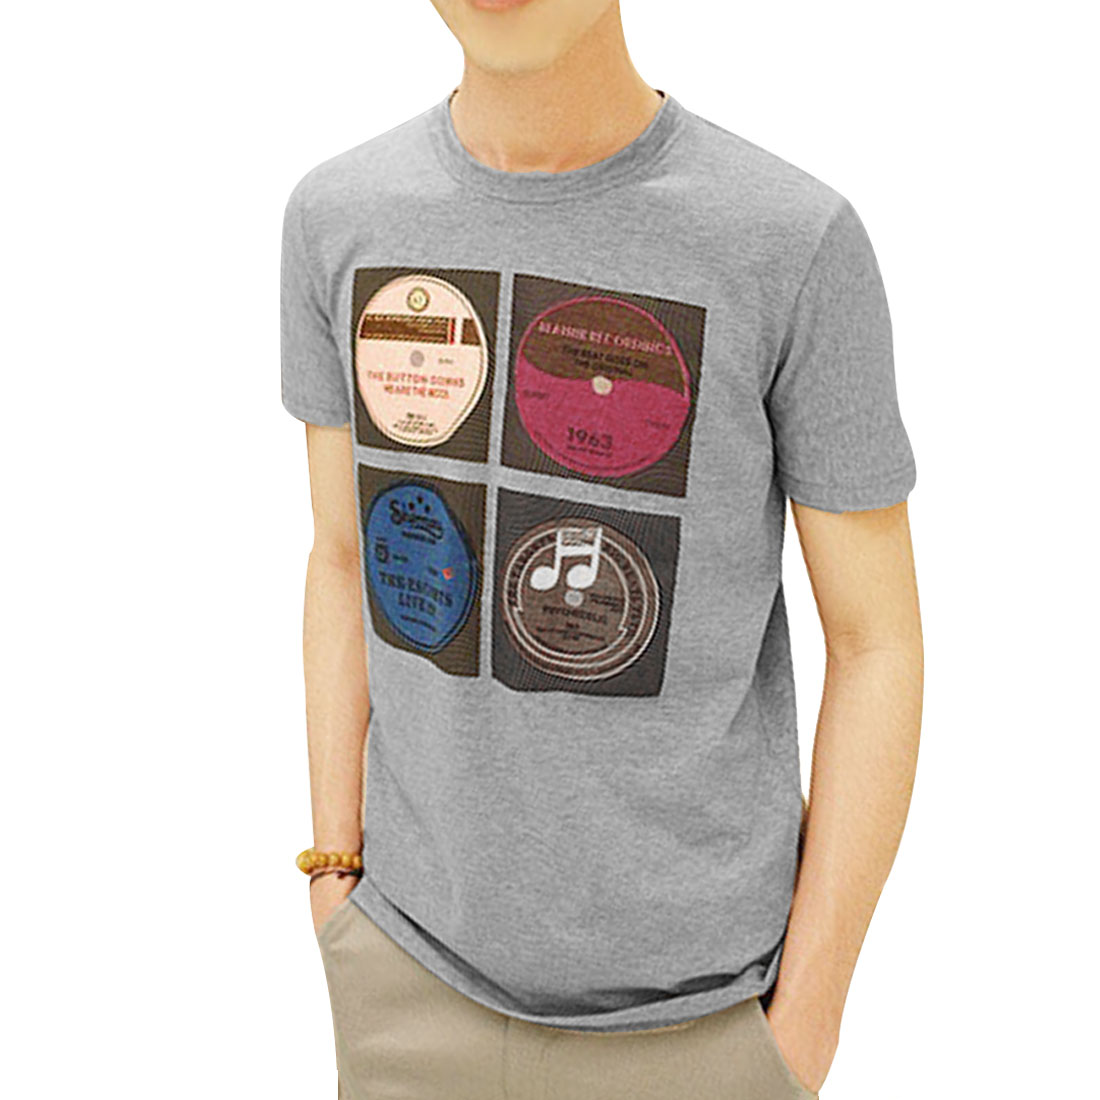 Short Sleeves CD Print British Style T-Shirt Gray S for Men